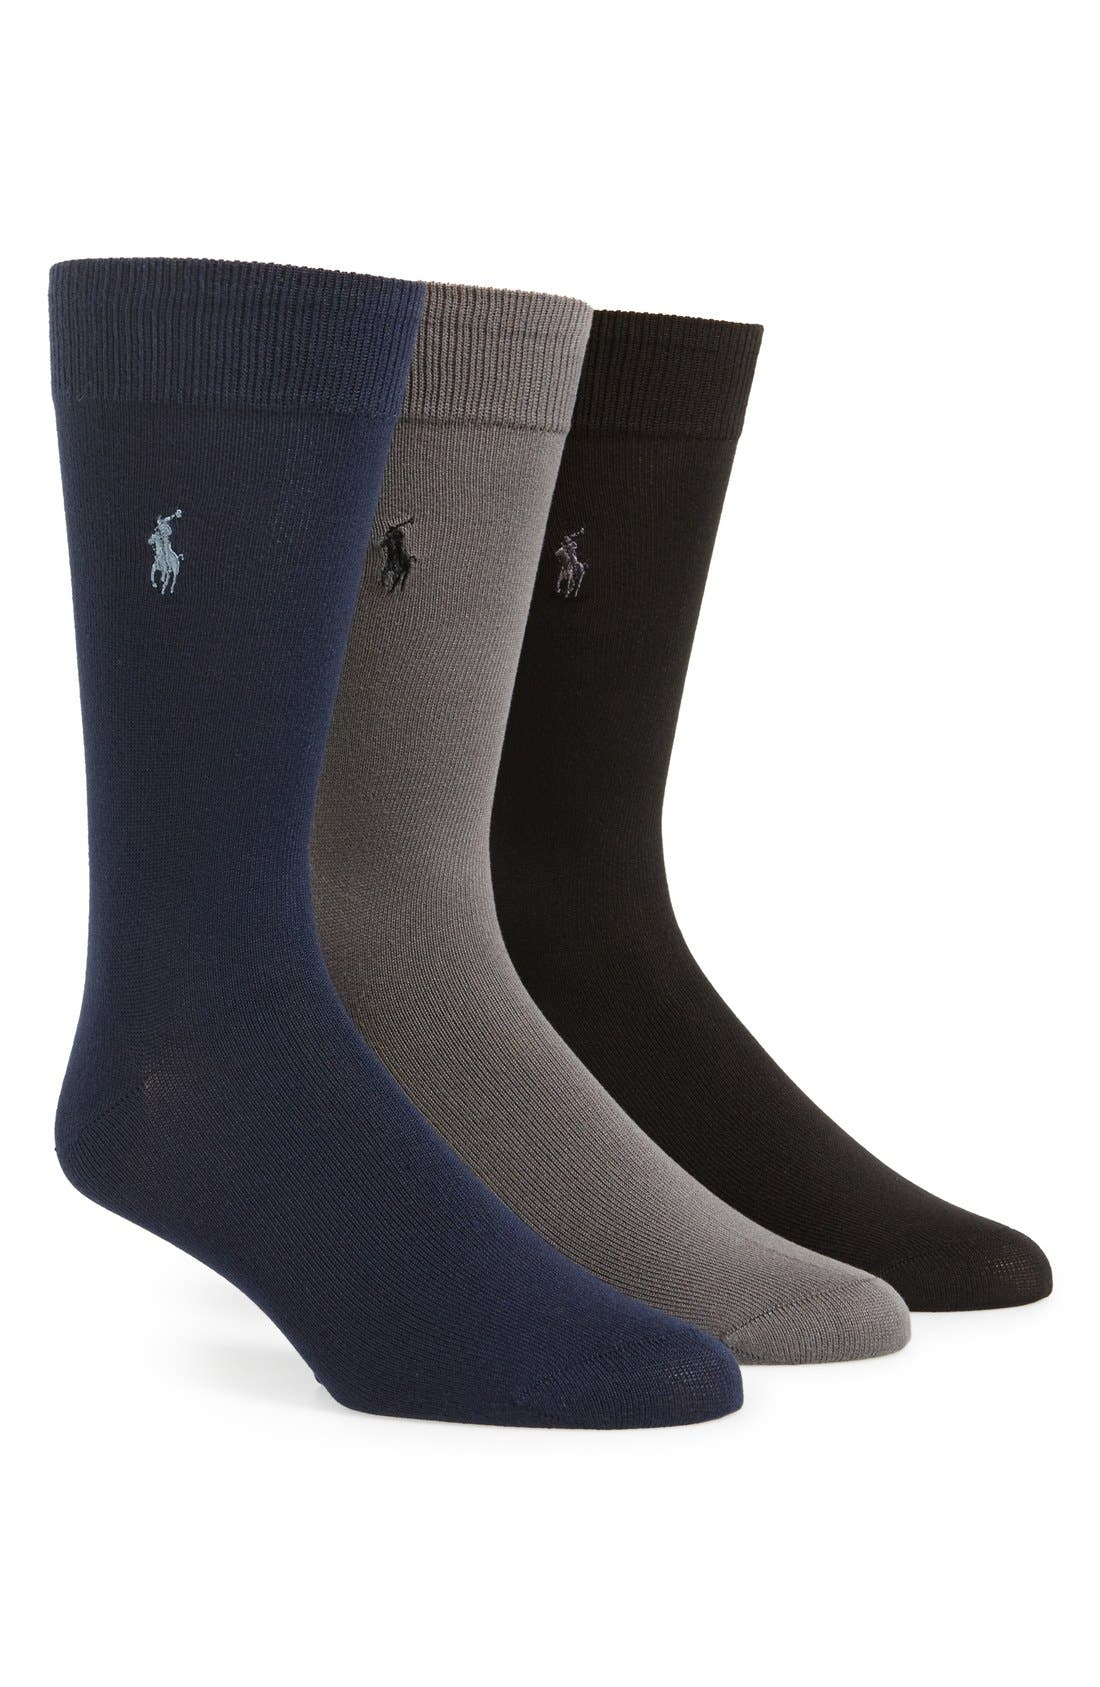 Assorted 3-Pack Supersoft Socks,                             Main thumbnail 1, color,                             NAVY MULTI